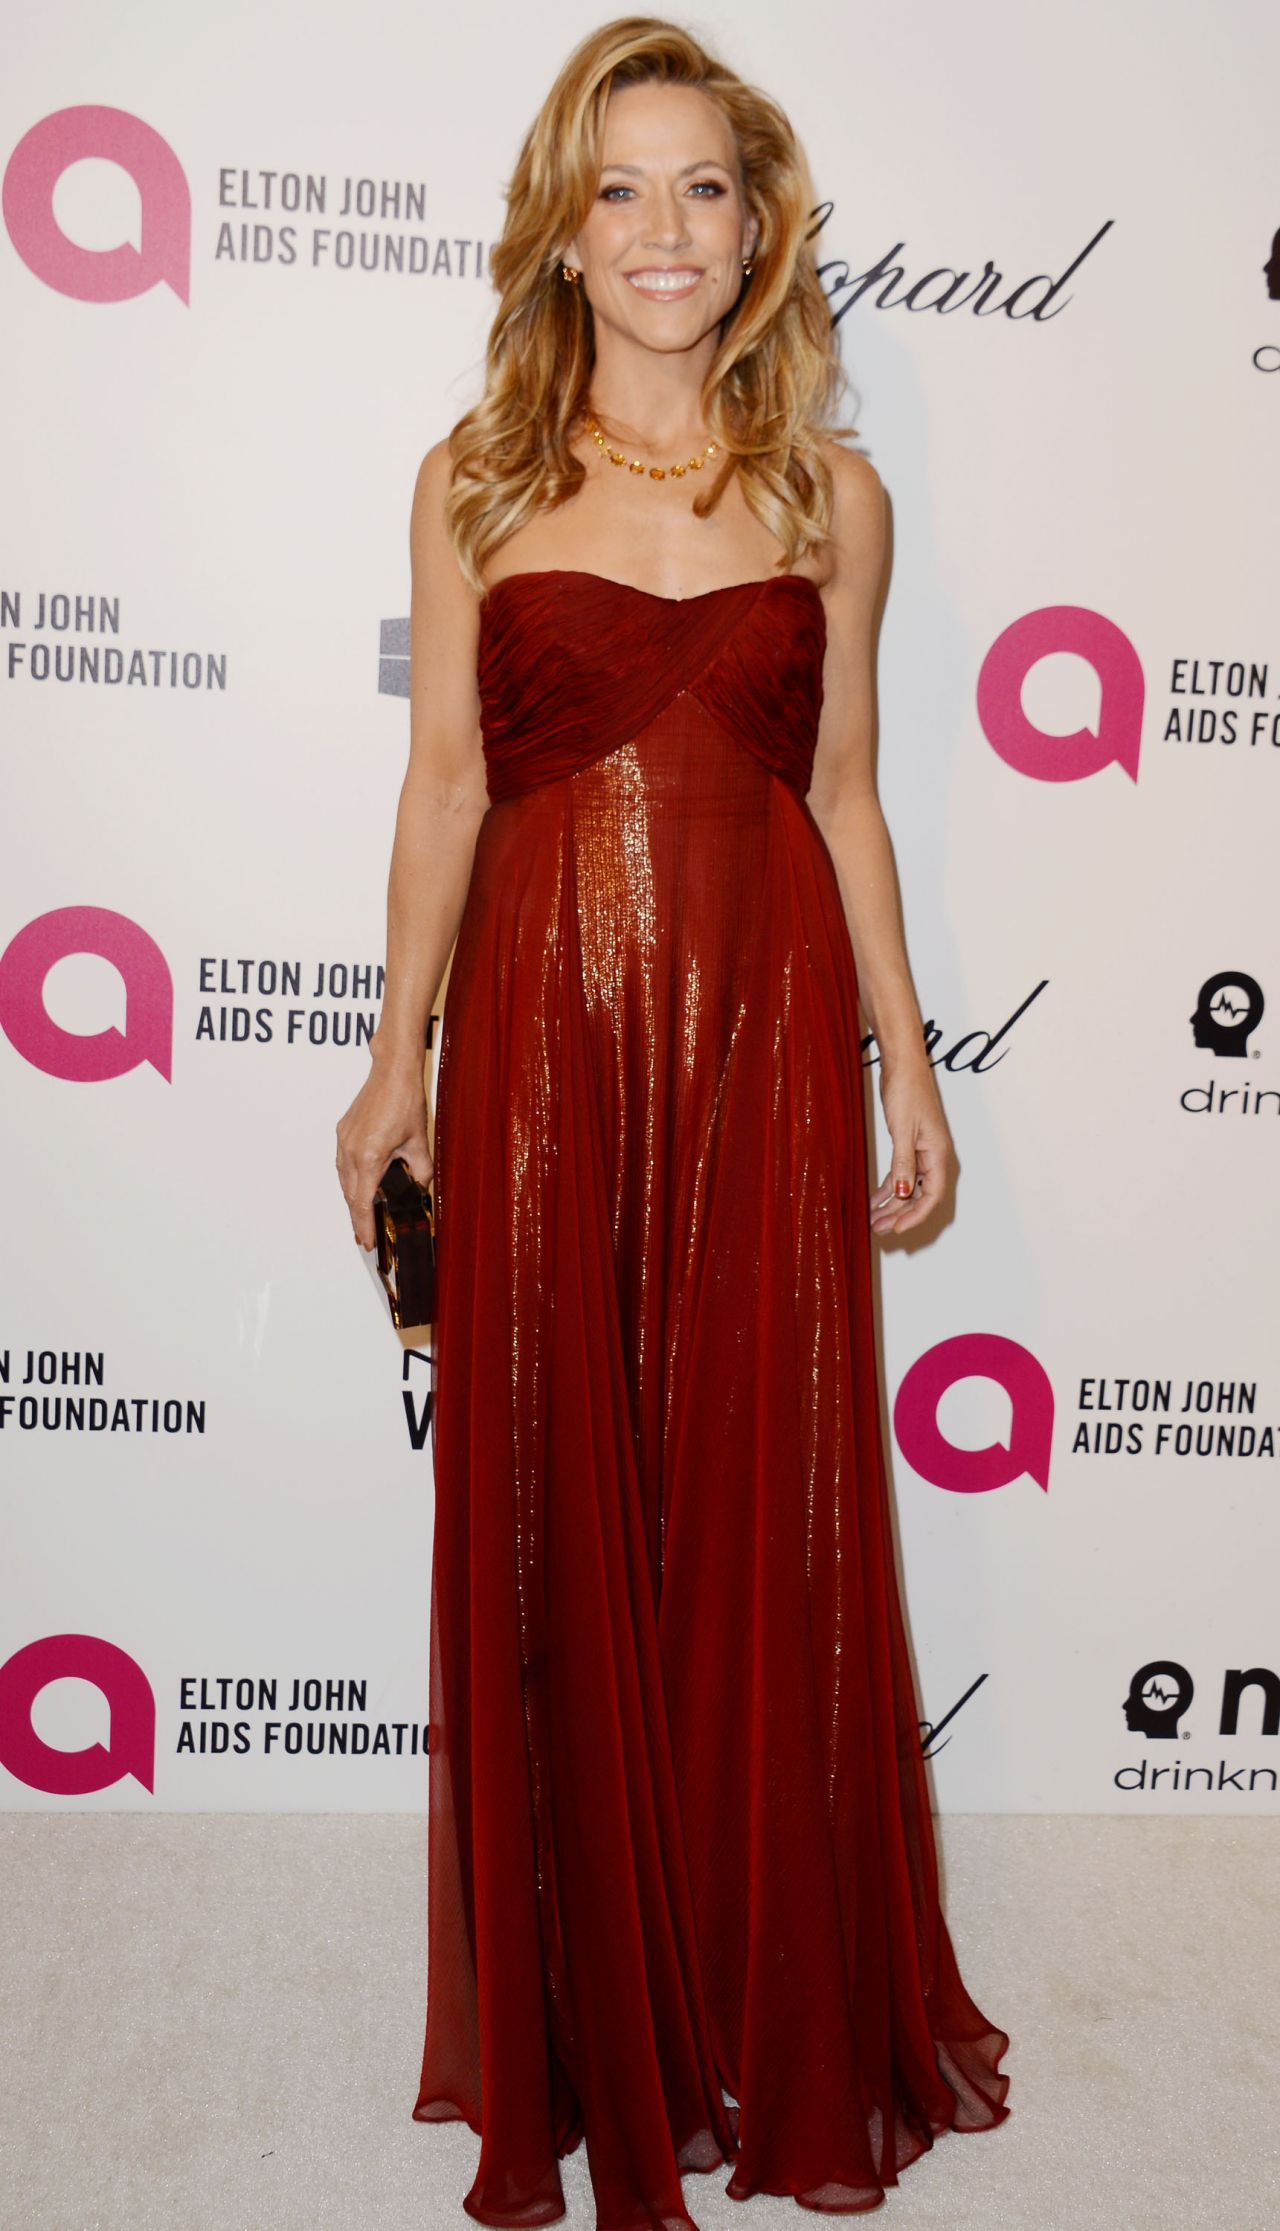 Sheryl Crow Wearing Roberto Cavalli Gown - 2014 Elton John Oscar Party